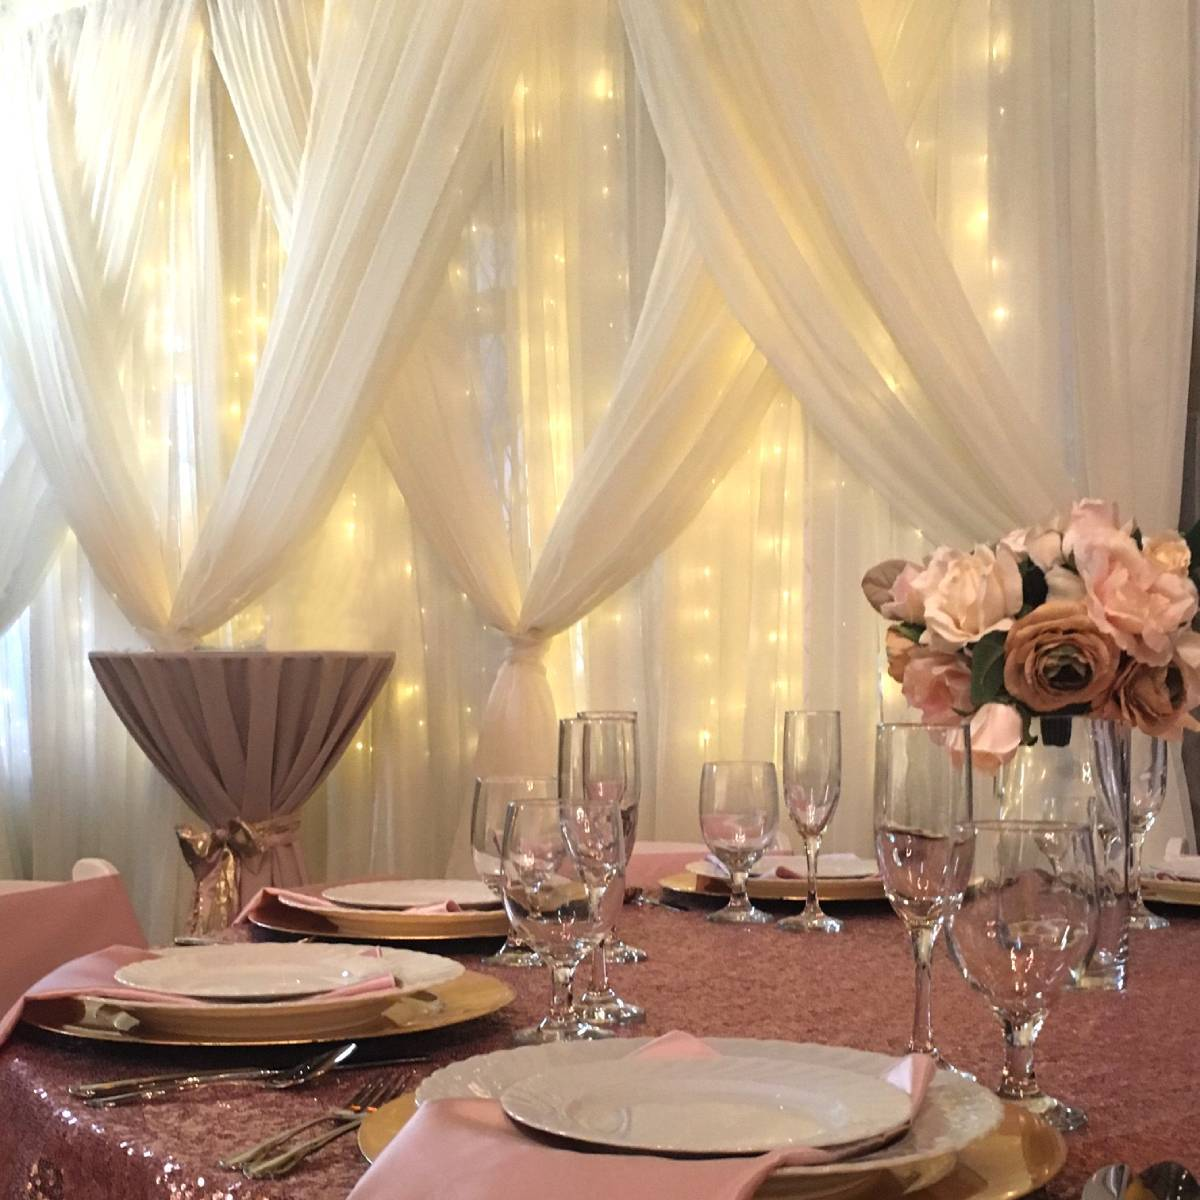 Sheer Ivory Backdrop With Sheer Ivory Front Layer, Crisscrossed Tied With Mini Lights